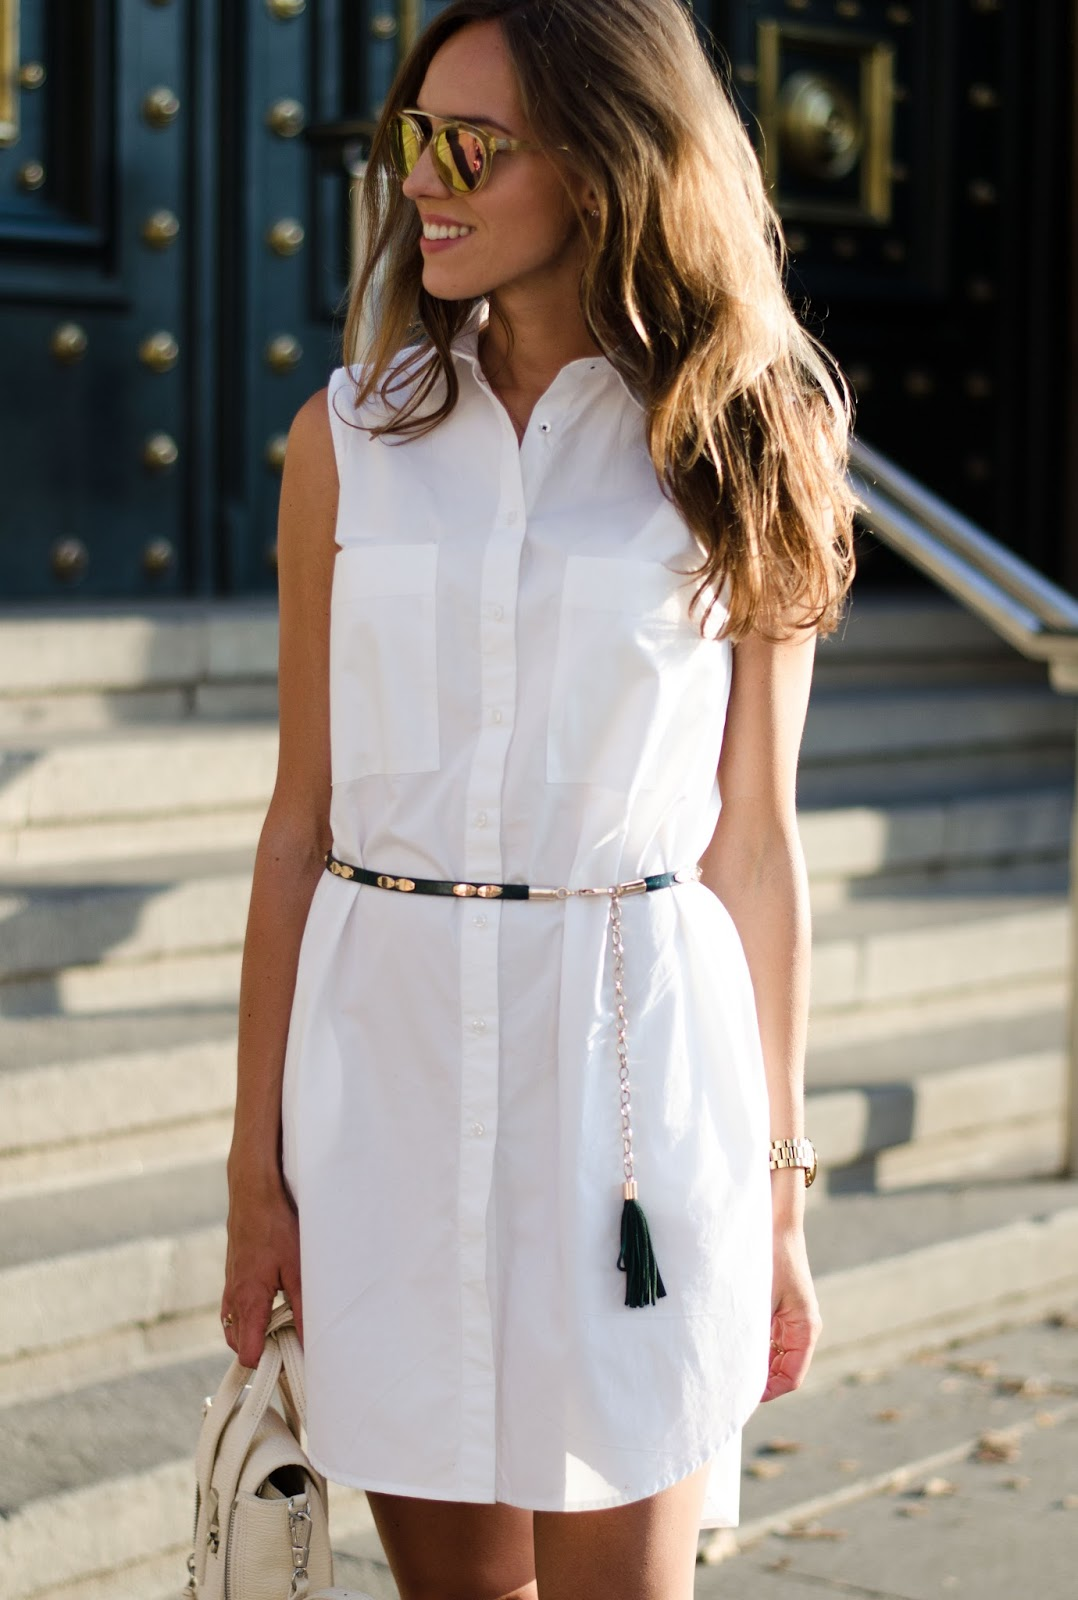 kristjaana mere white sleeveless shirt dress summer outfit